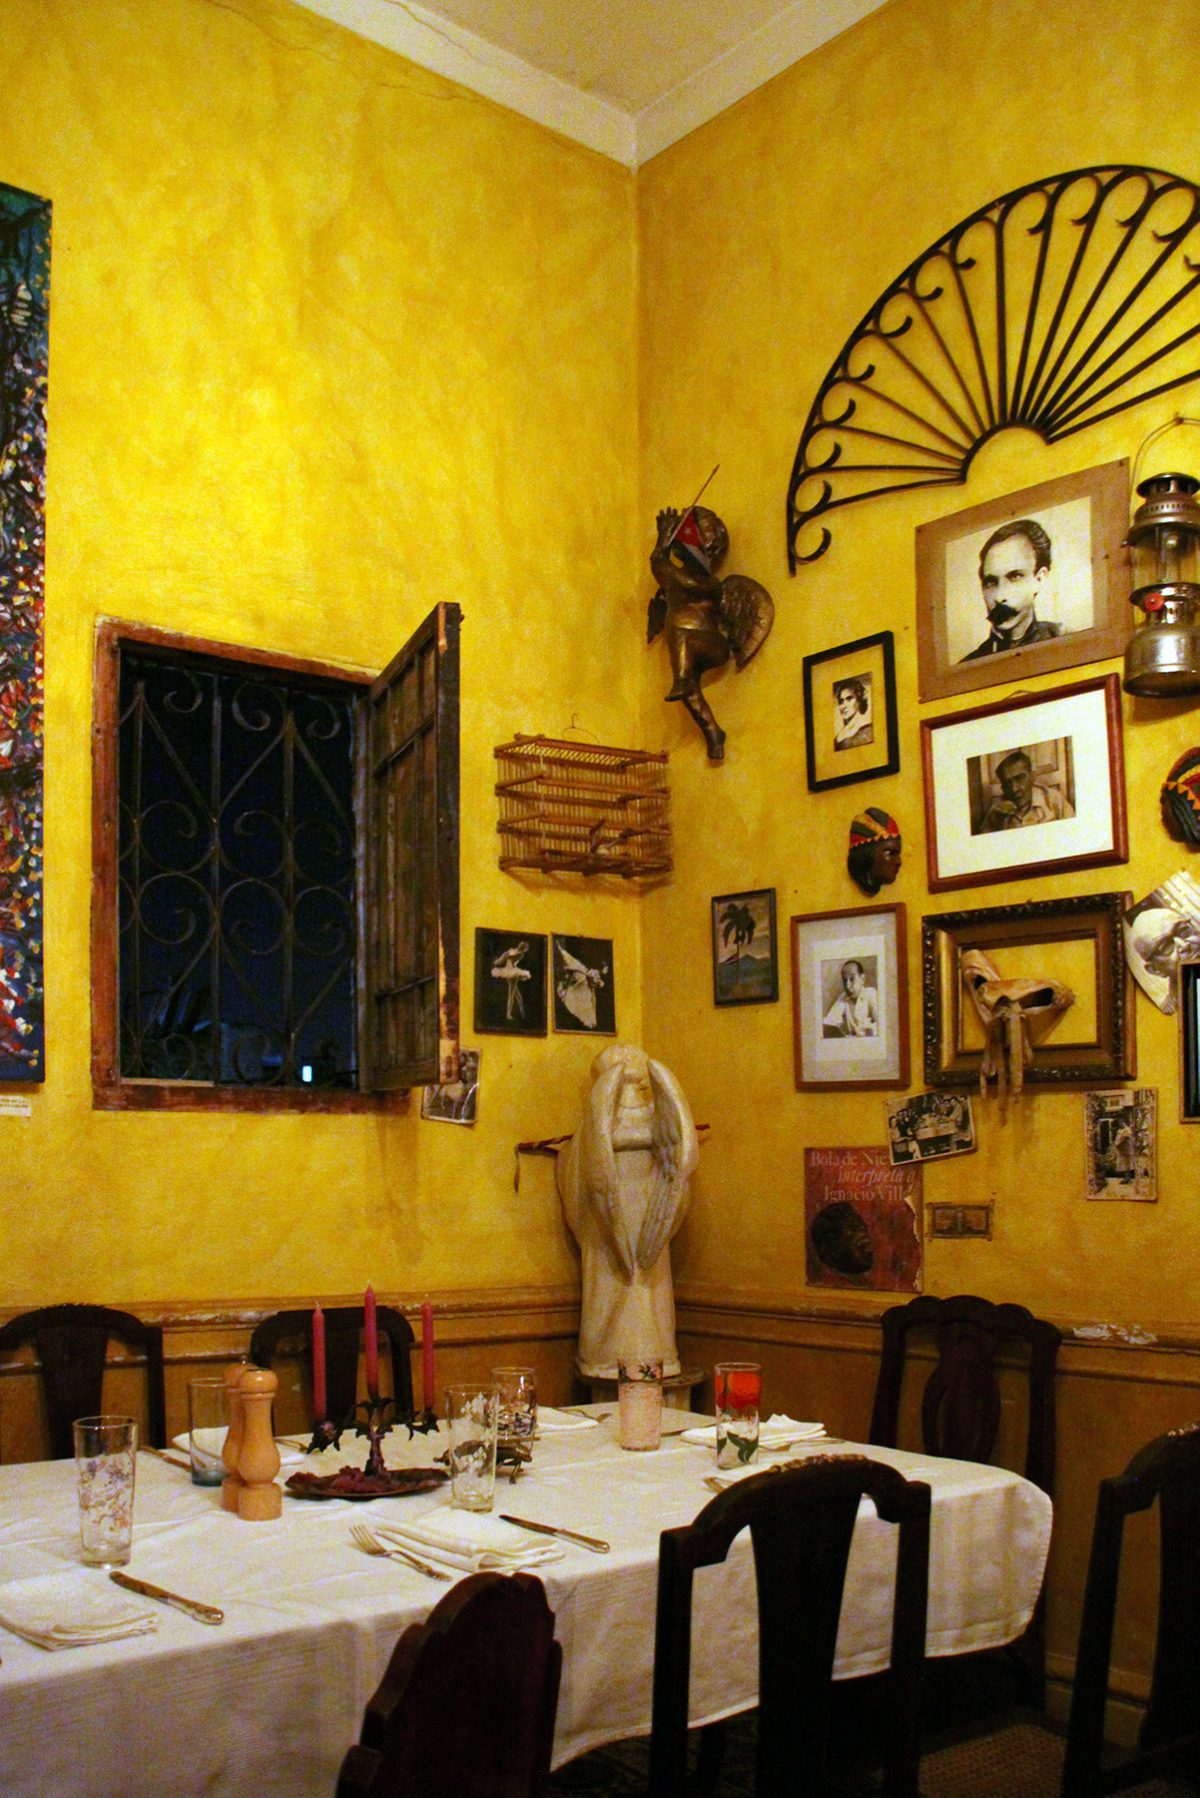 La Guarida 1 3220818976 - The Best Places In Cuba For Authentic Cuban Food